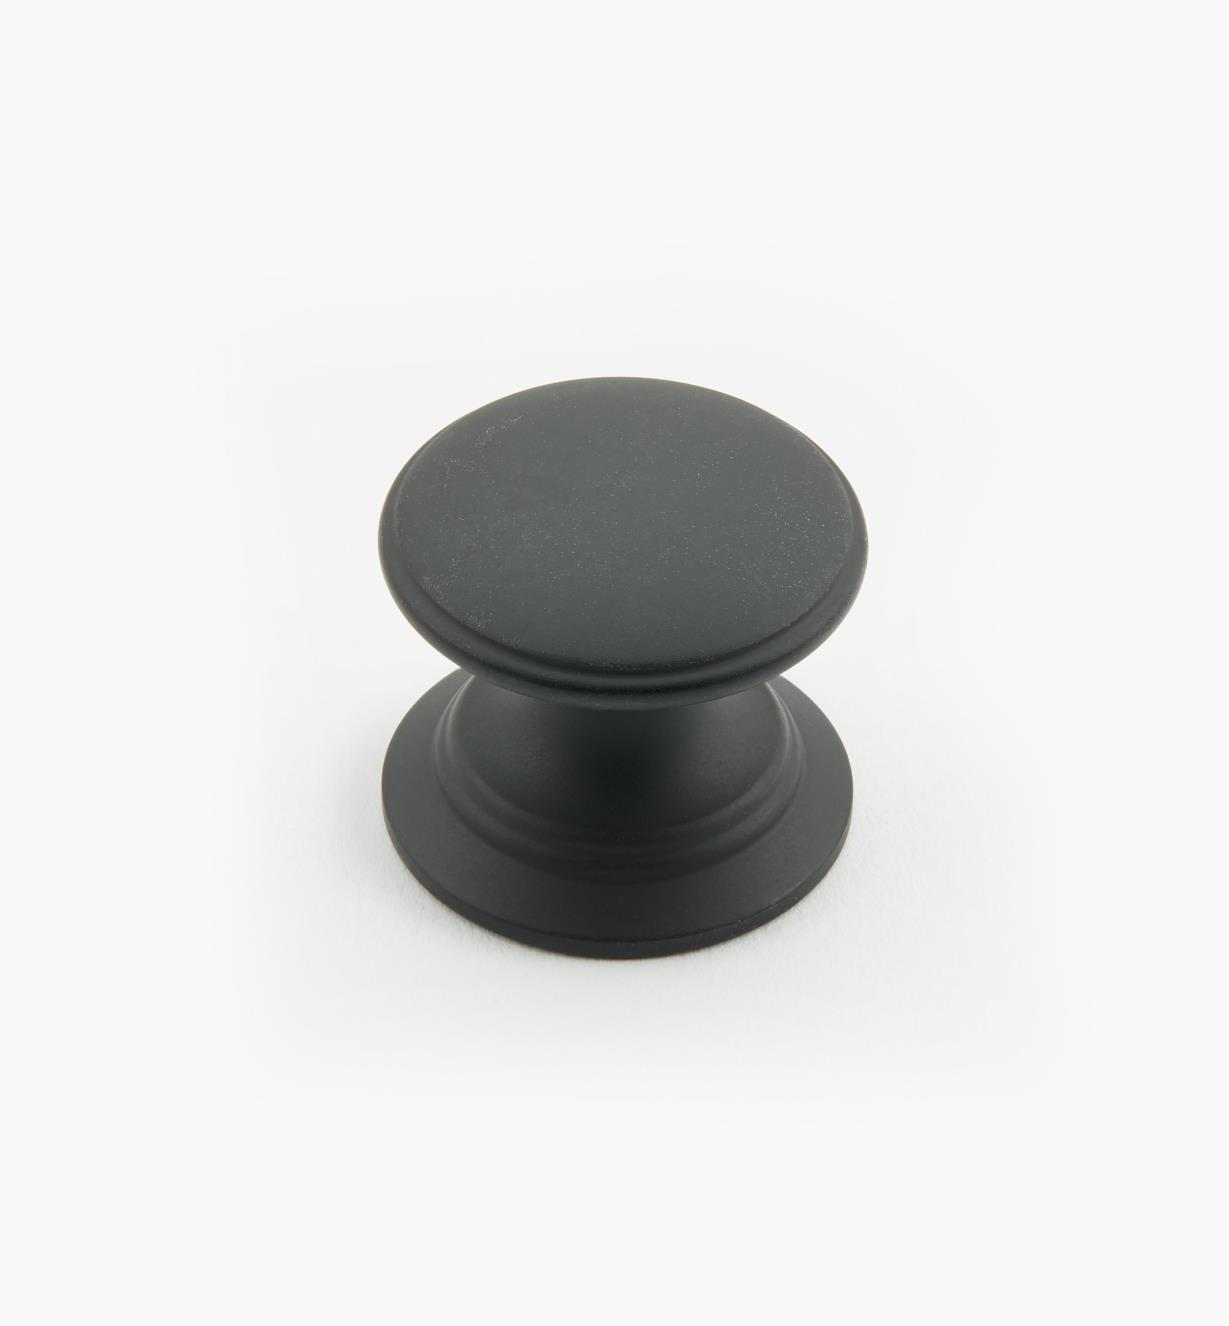 "02W1428 - Oil-Rubbed Bronze Suite - 1"" x 7/8"" Round Brass Knob"